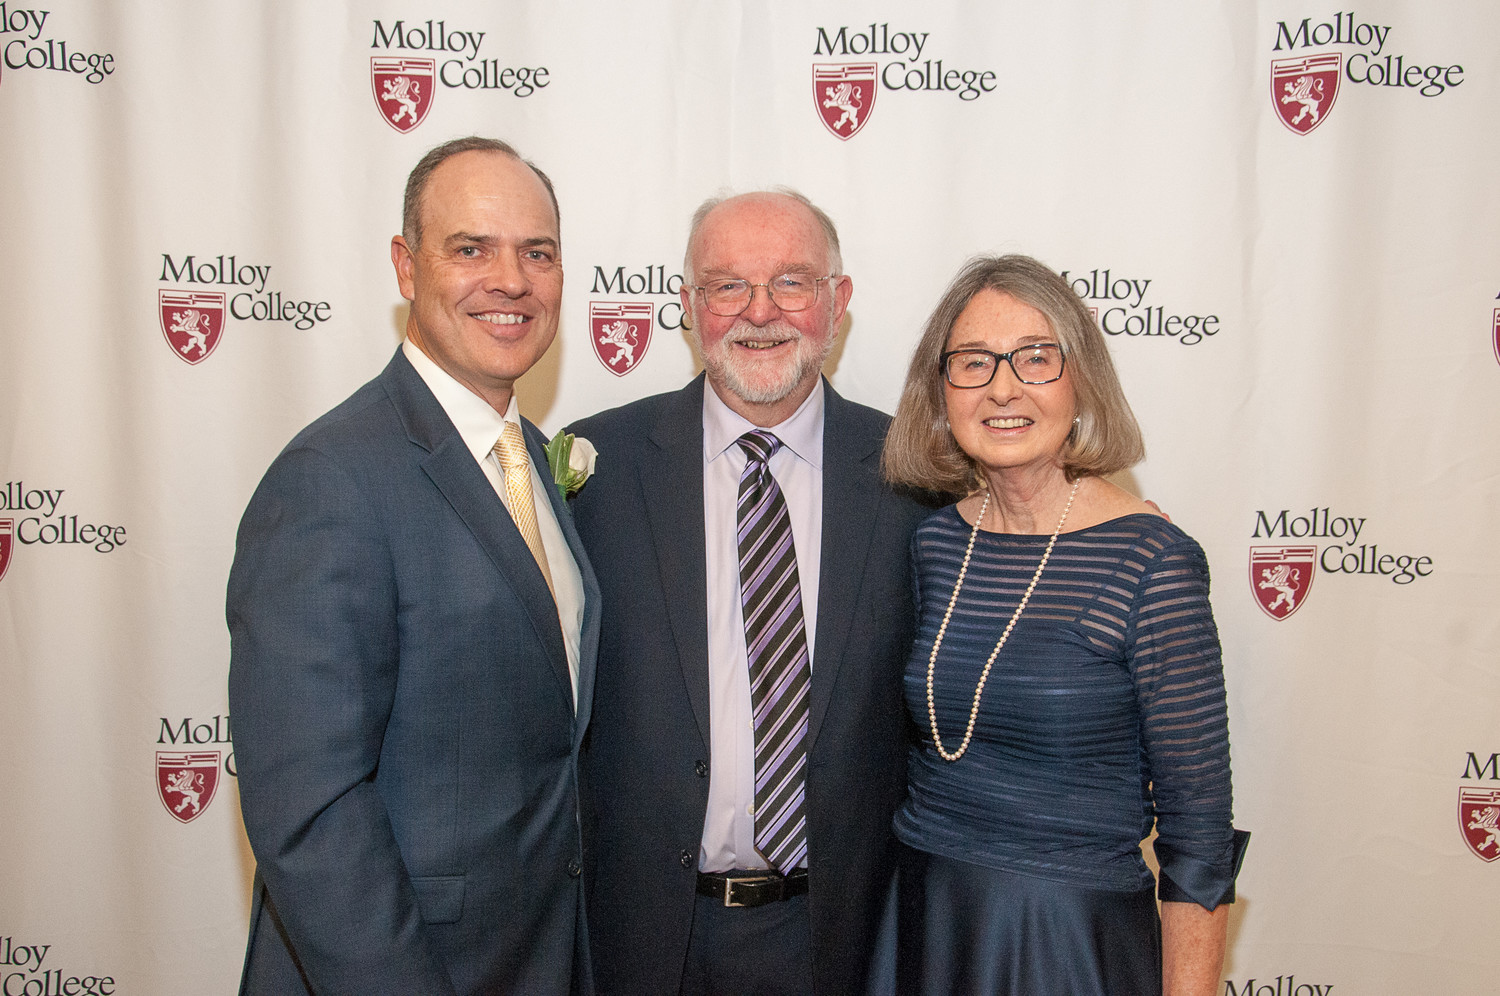 Edward J. Thompson, vice president of advancement at Molloy, left, with Jim and Valerie Collins. Valerie was a Distinguished Alumni Award recipient.